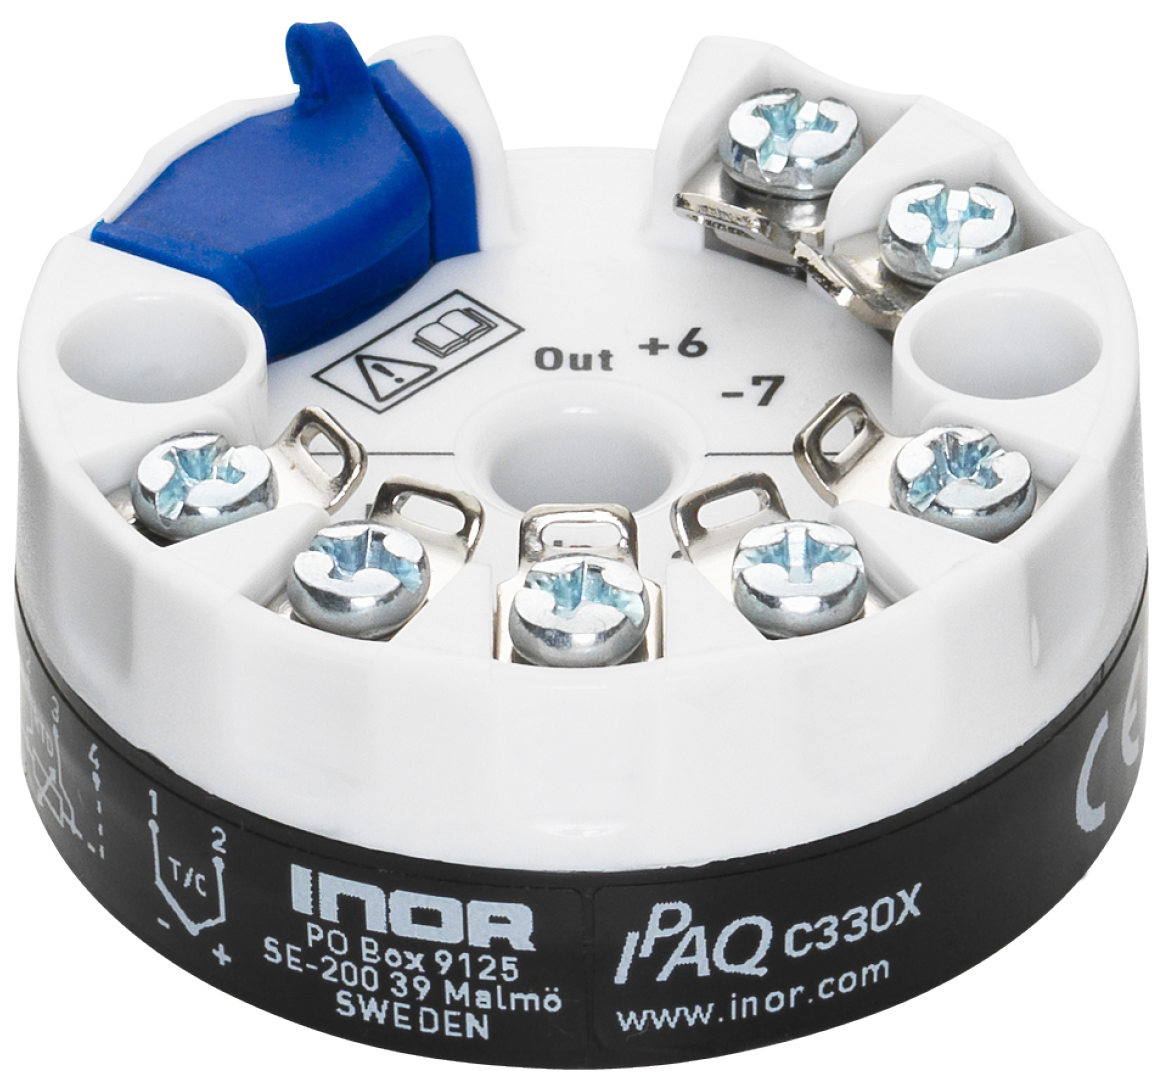 ipaq-c330x-new-universal-in-head-pc-programmable-isolation-1500-v-iecex-atex-approval